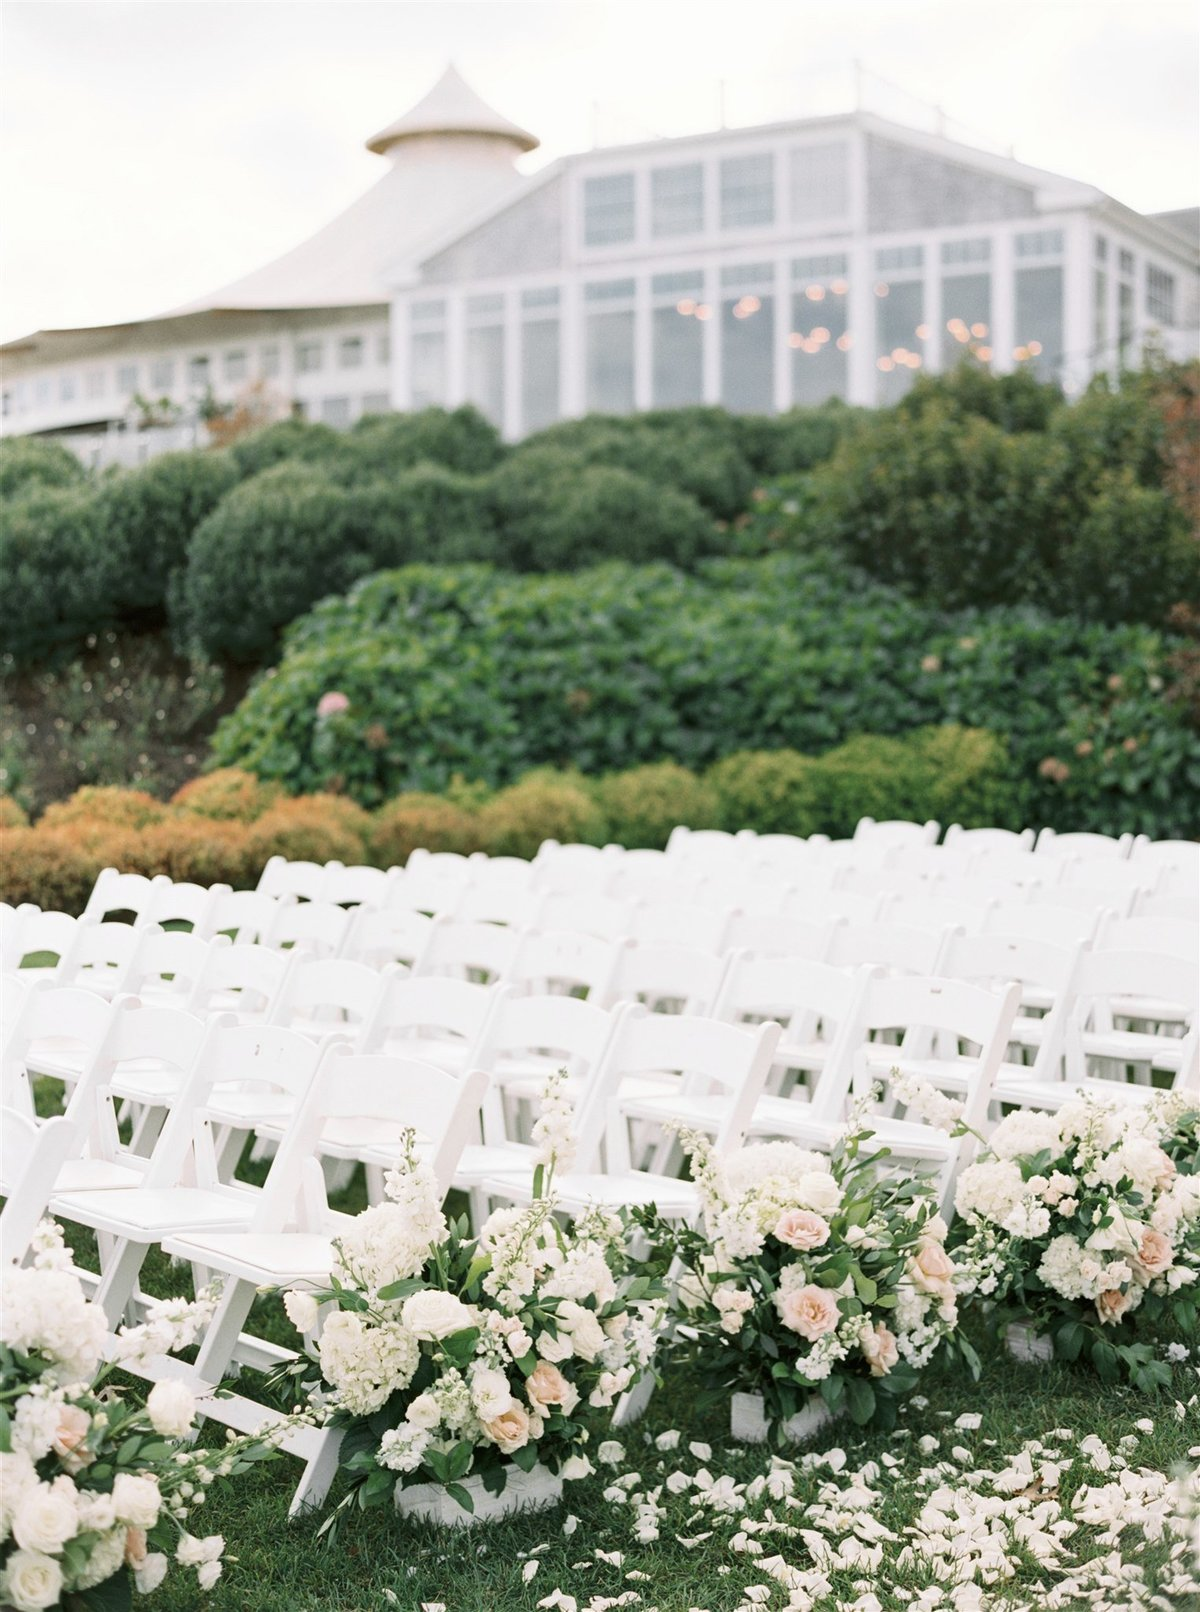 Garden inspired wedding ceremony with floral aisle for a Cape Cod Wedding by luxury Cape Cod wedding planner and designer Always Yours Events